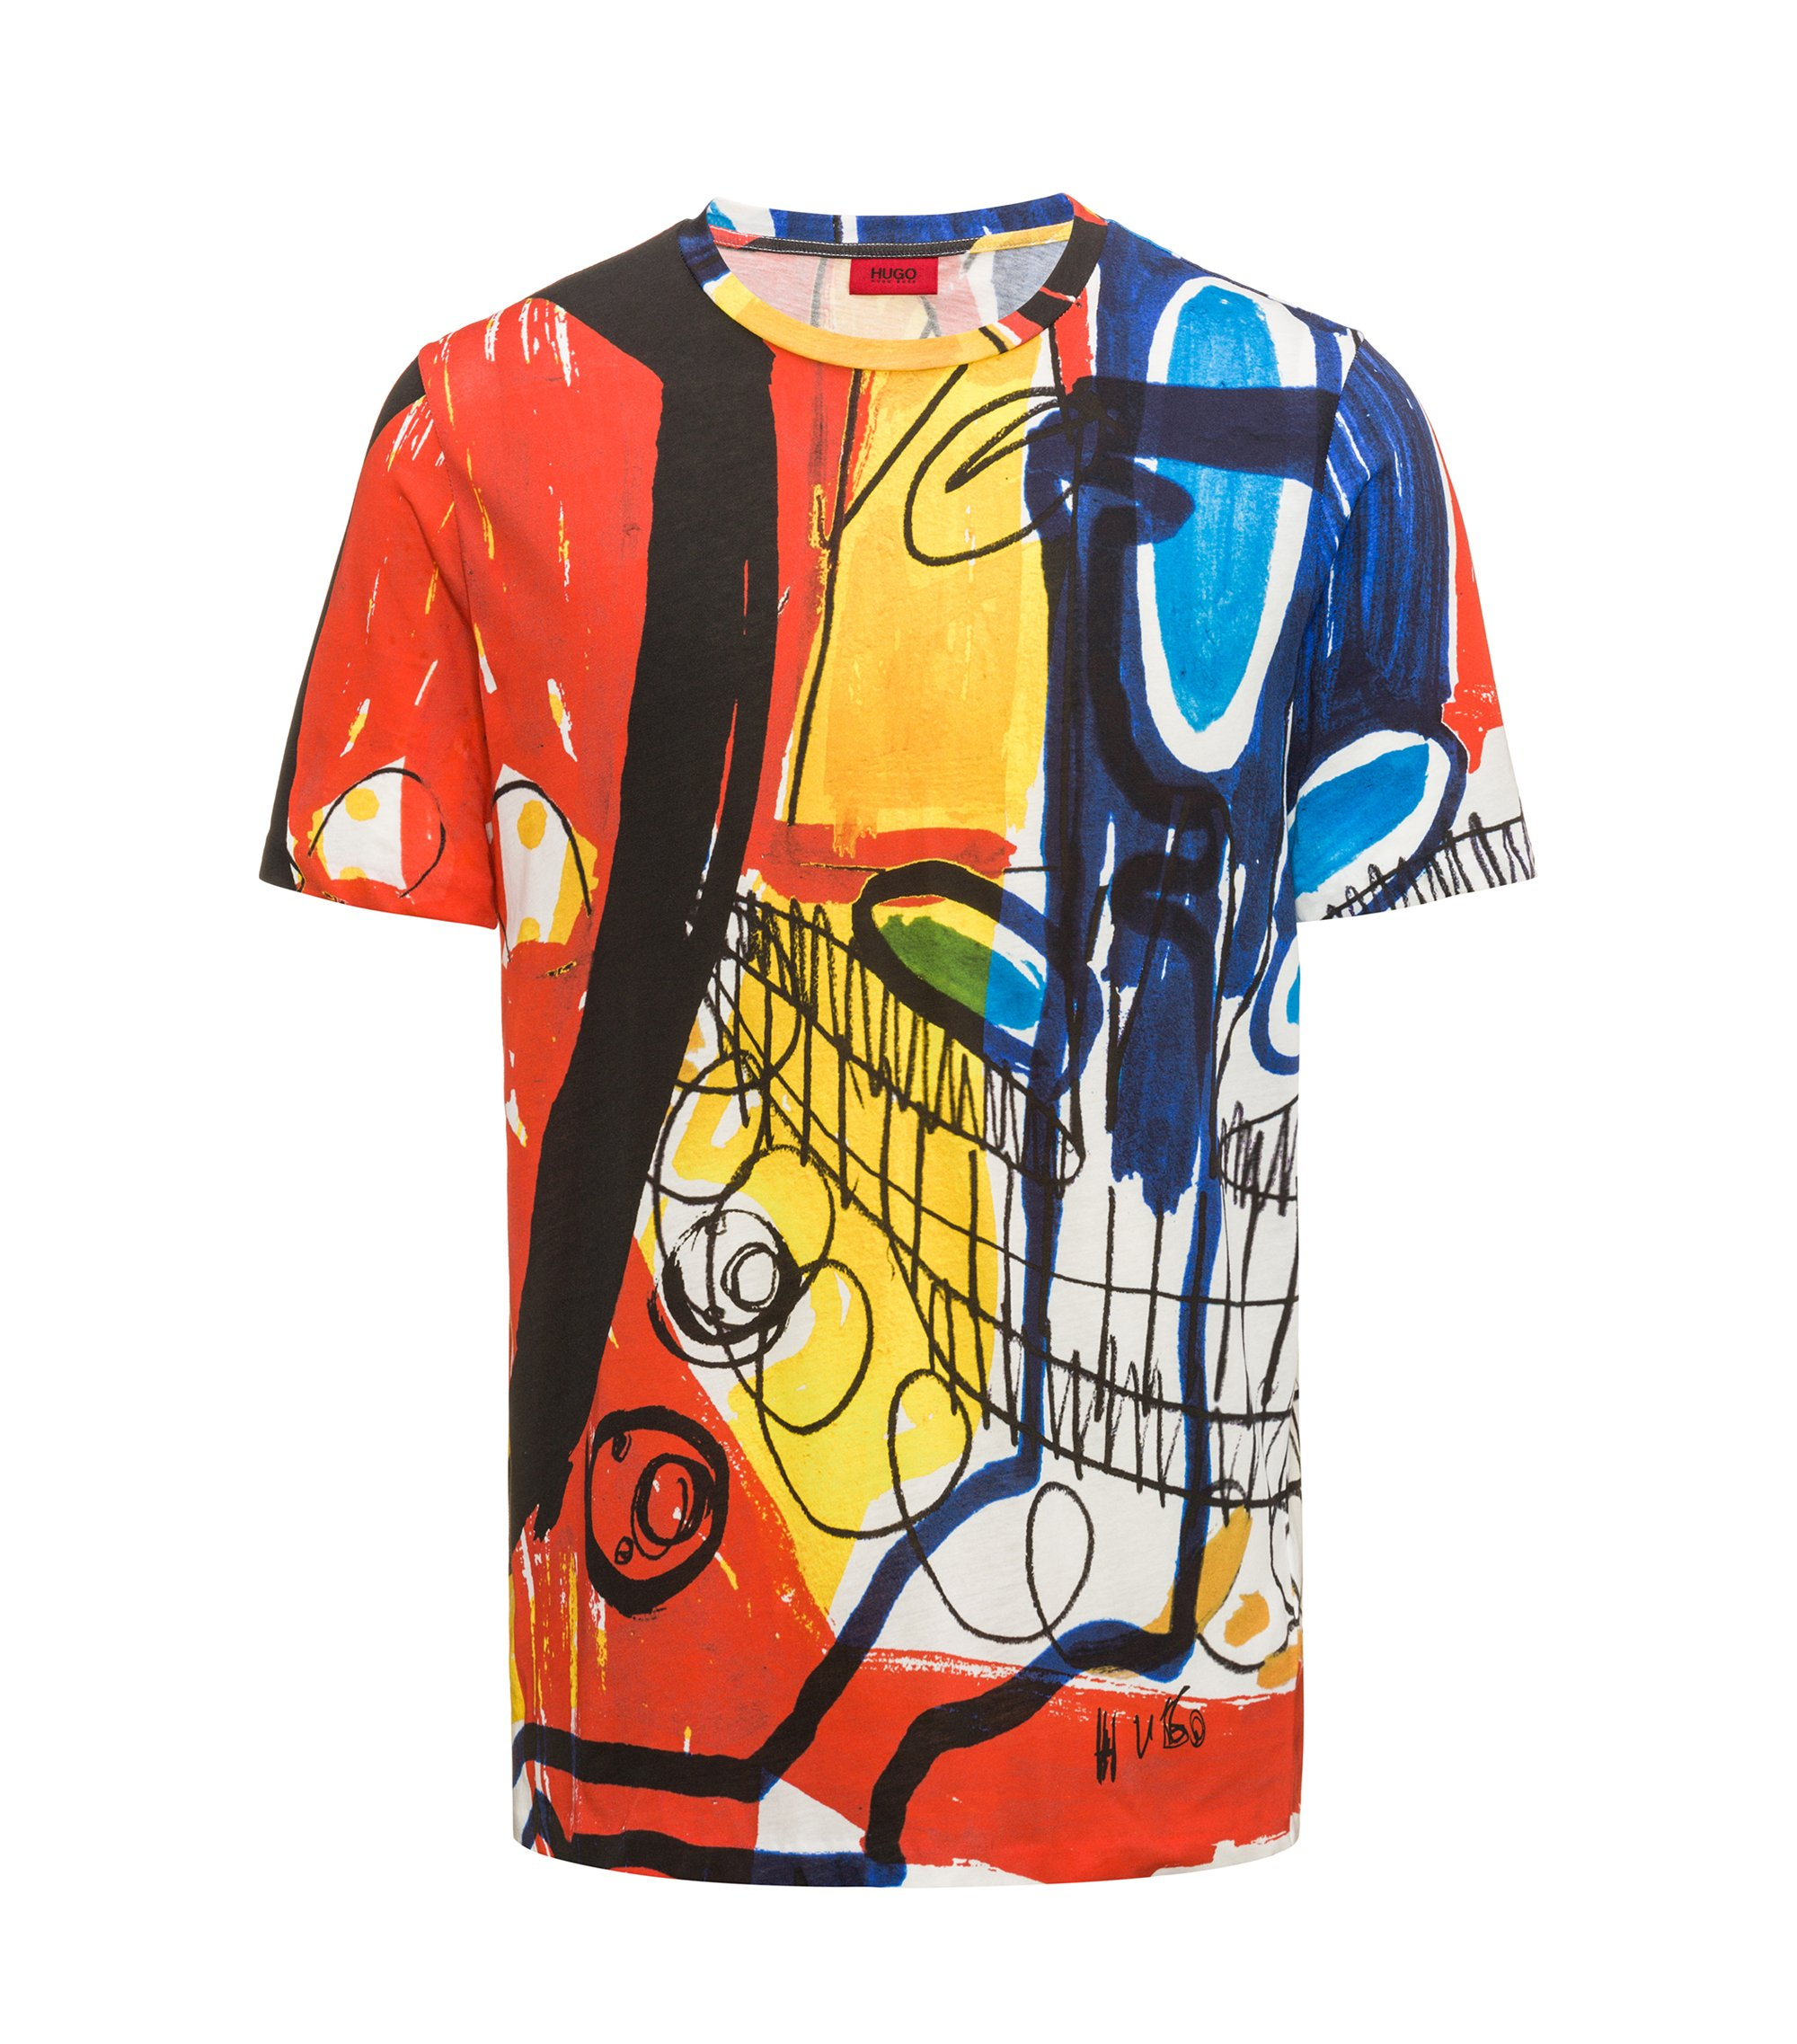 Abstract Cotton T-Shirt | Dolorful, Patterned